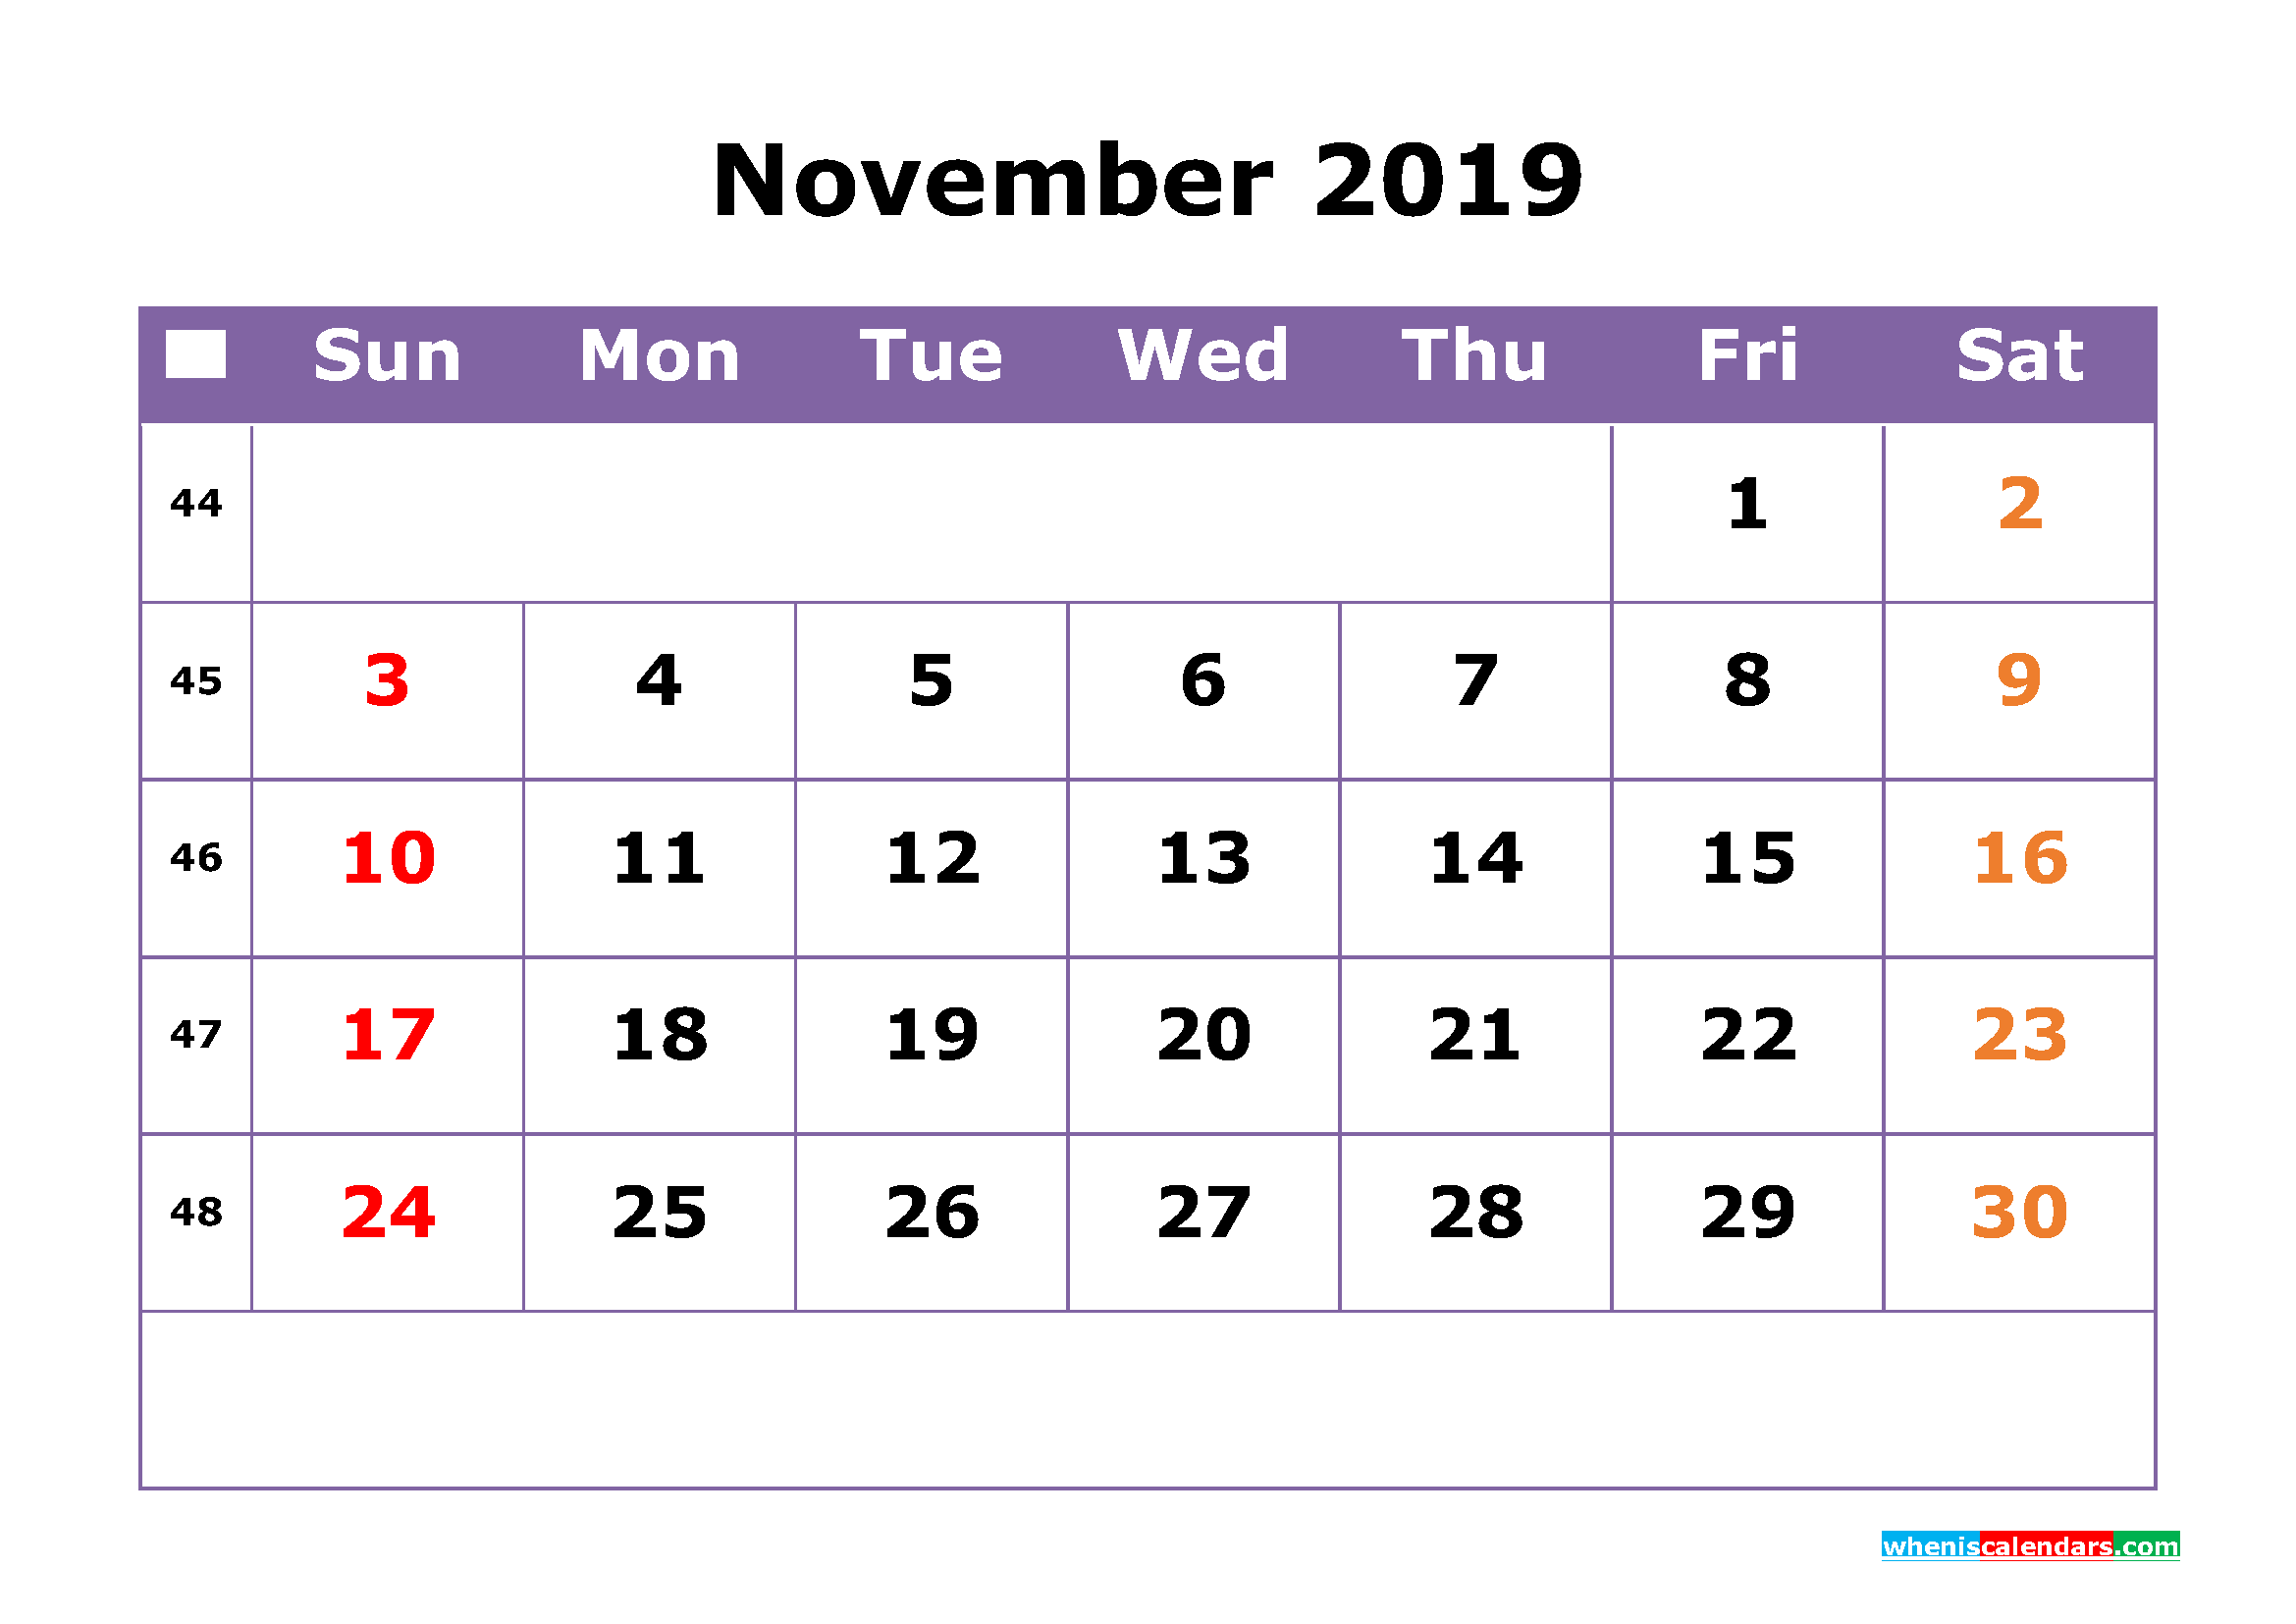 November 2019 Printable Calendar with Week Numbers for Free Download